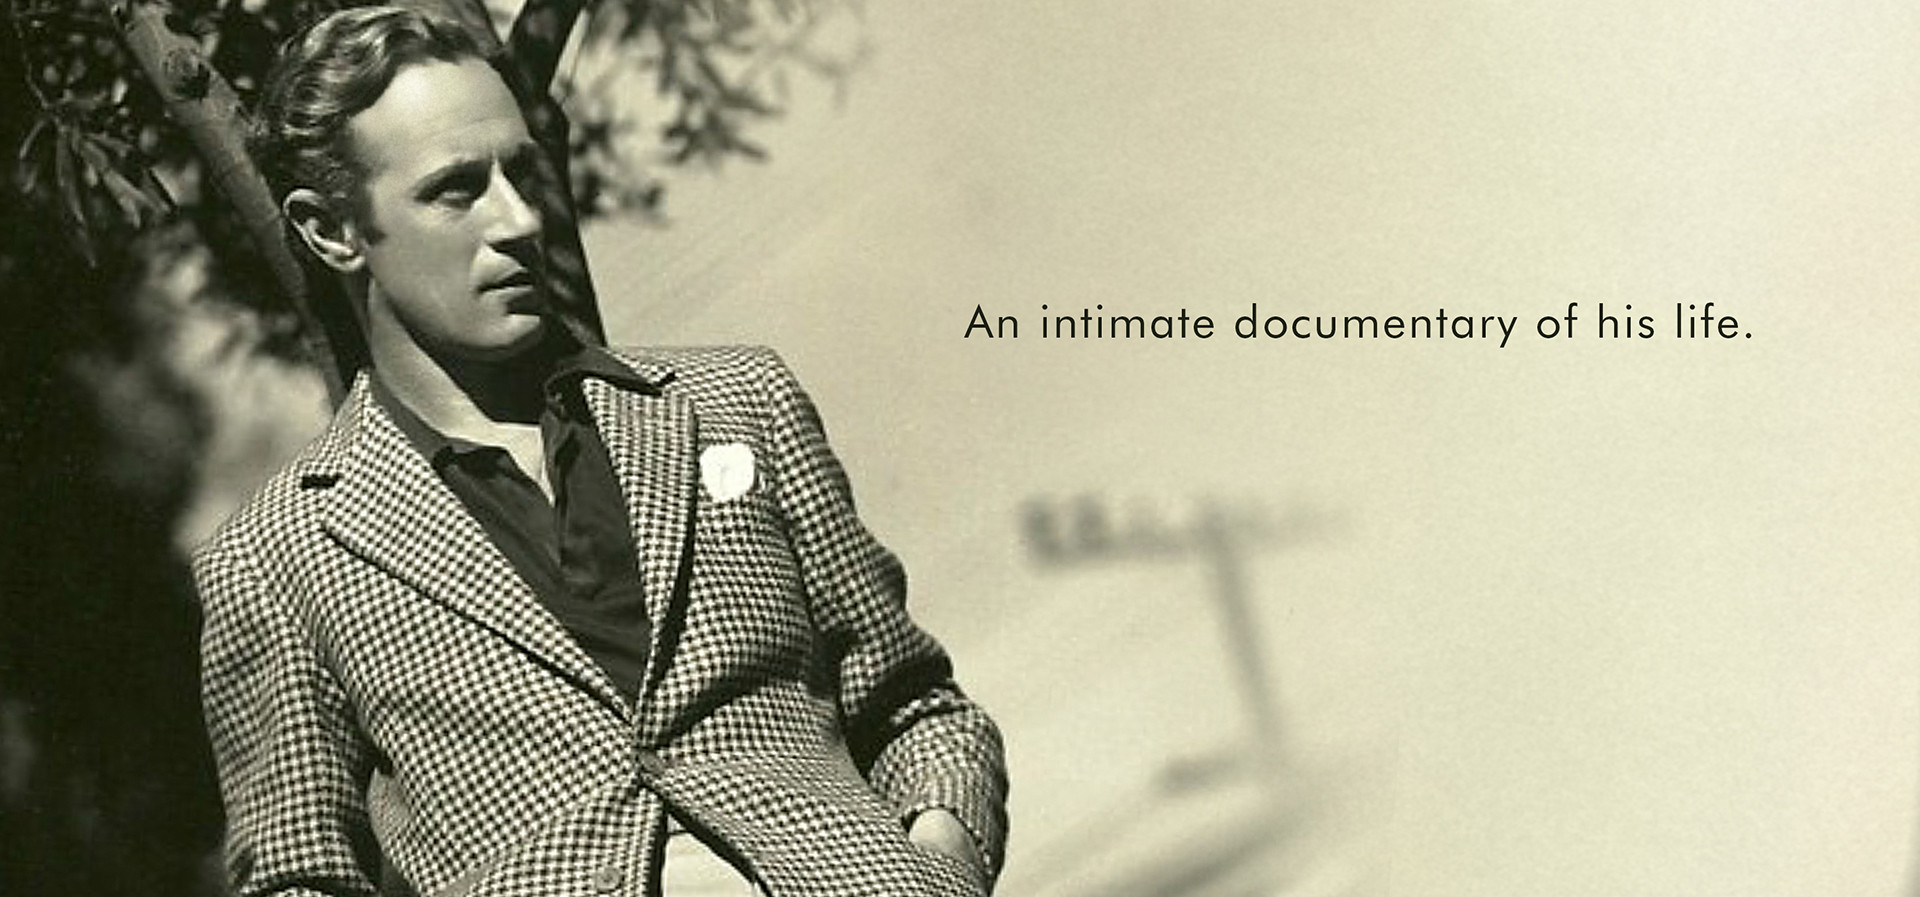 An intimate documentary of the life of Leslie Howard